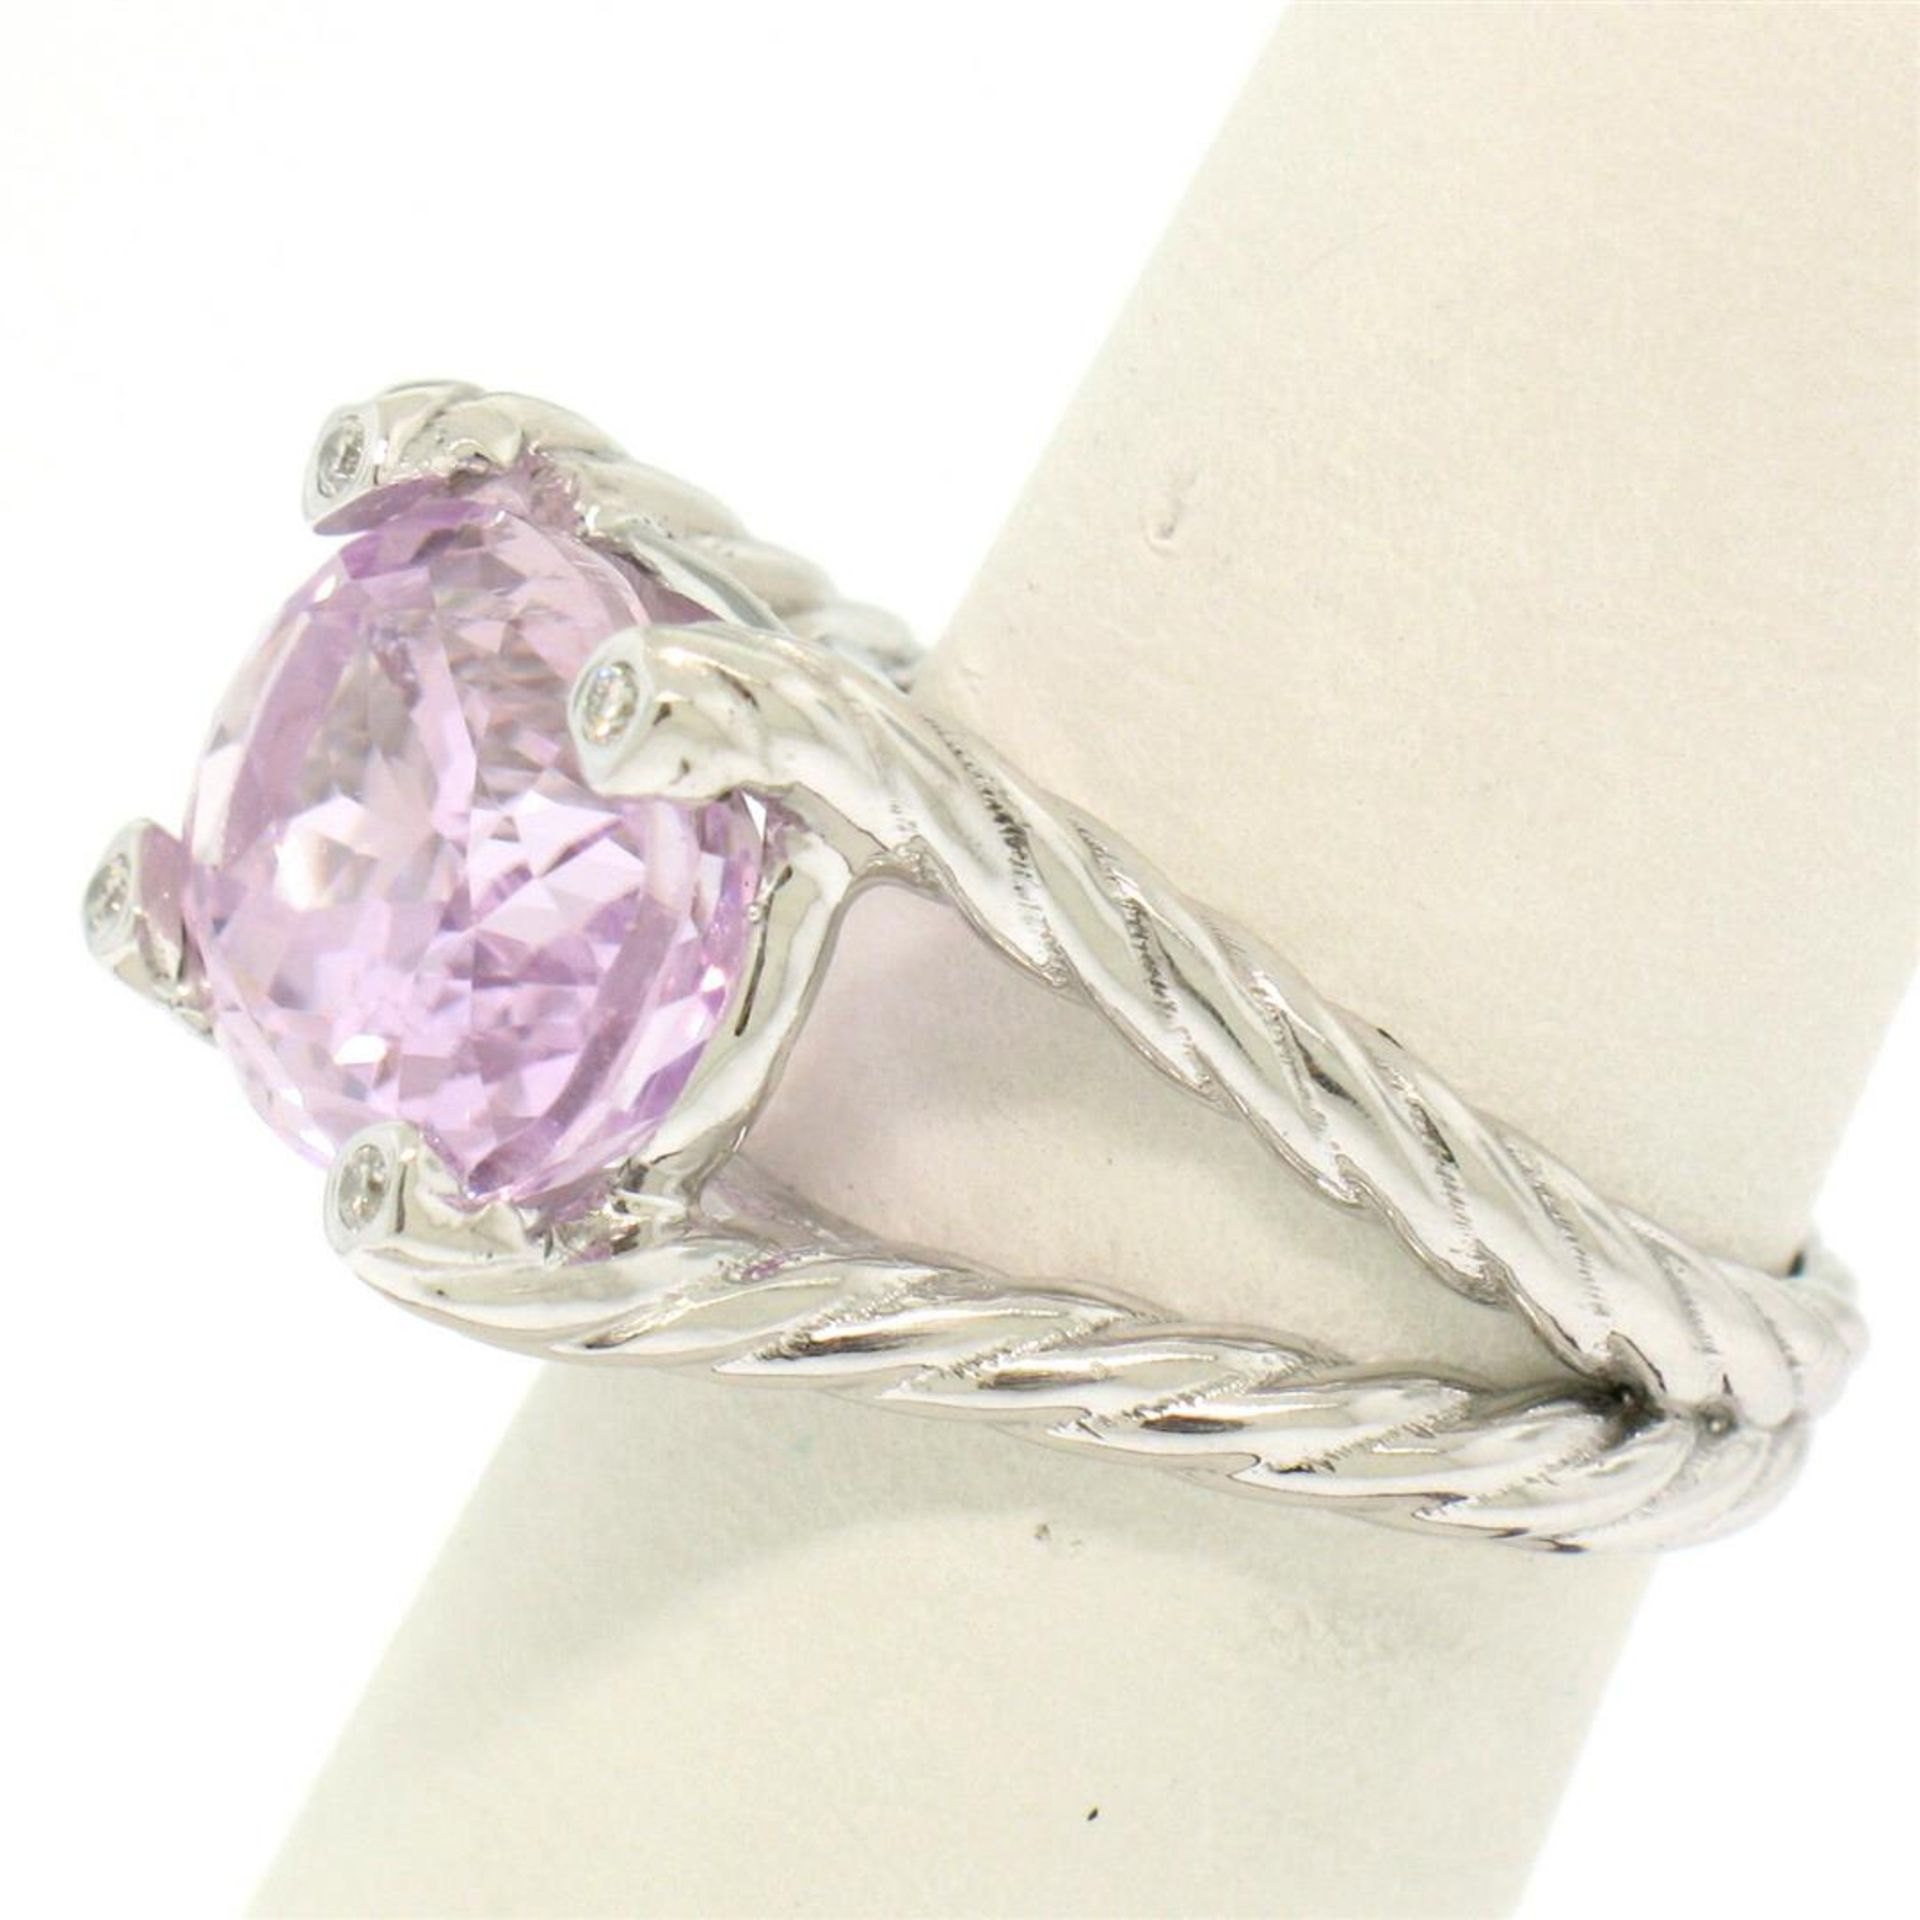 14k White Gold Twisted Cable 8.5 ctw Oval Kunzite Solitaire Ring 4 Diamond Accen - Image 2 of 8